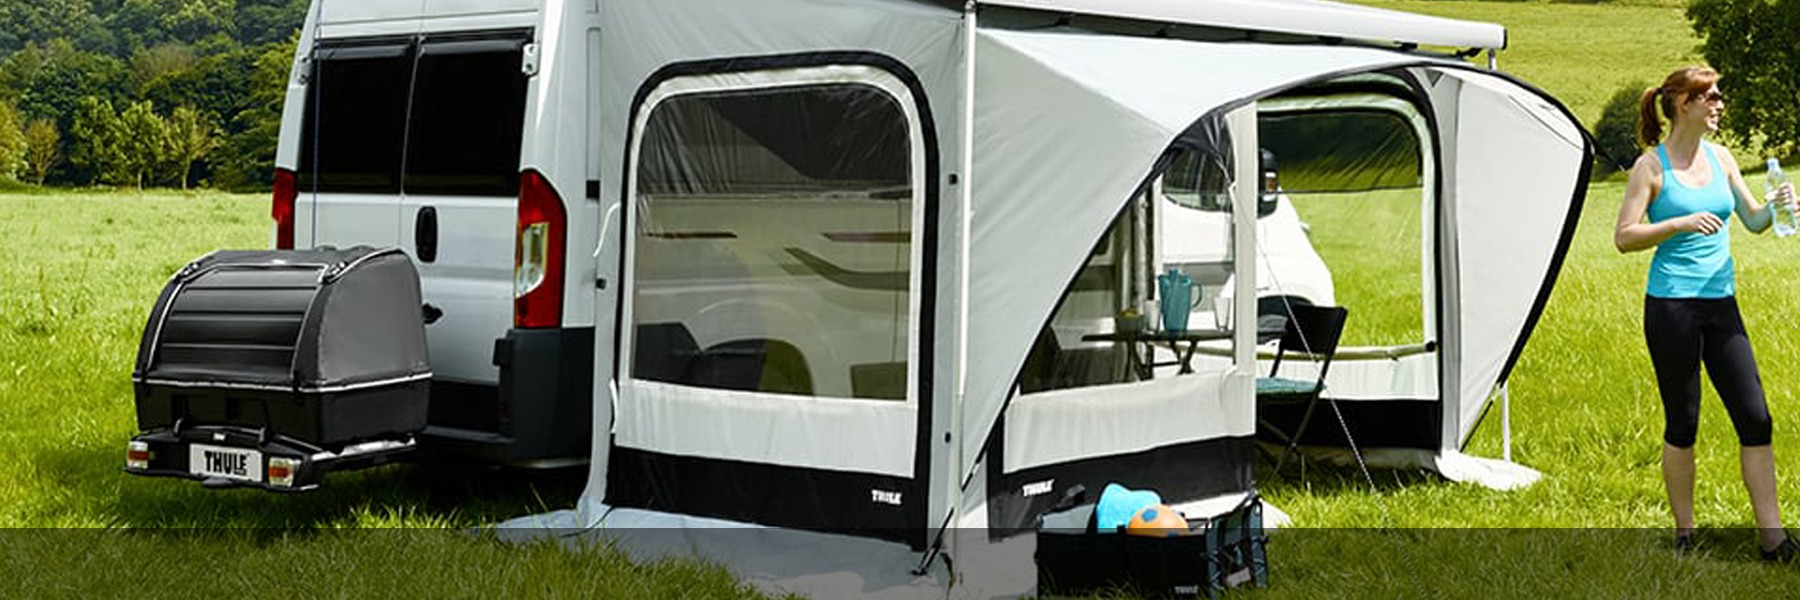 Thule caravan and leisure equipment